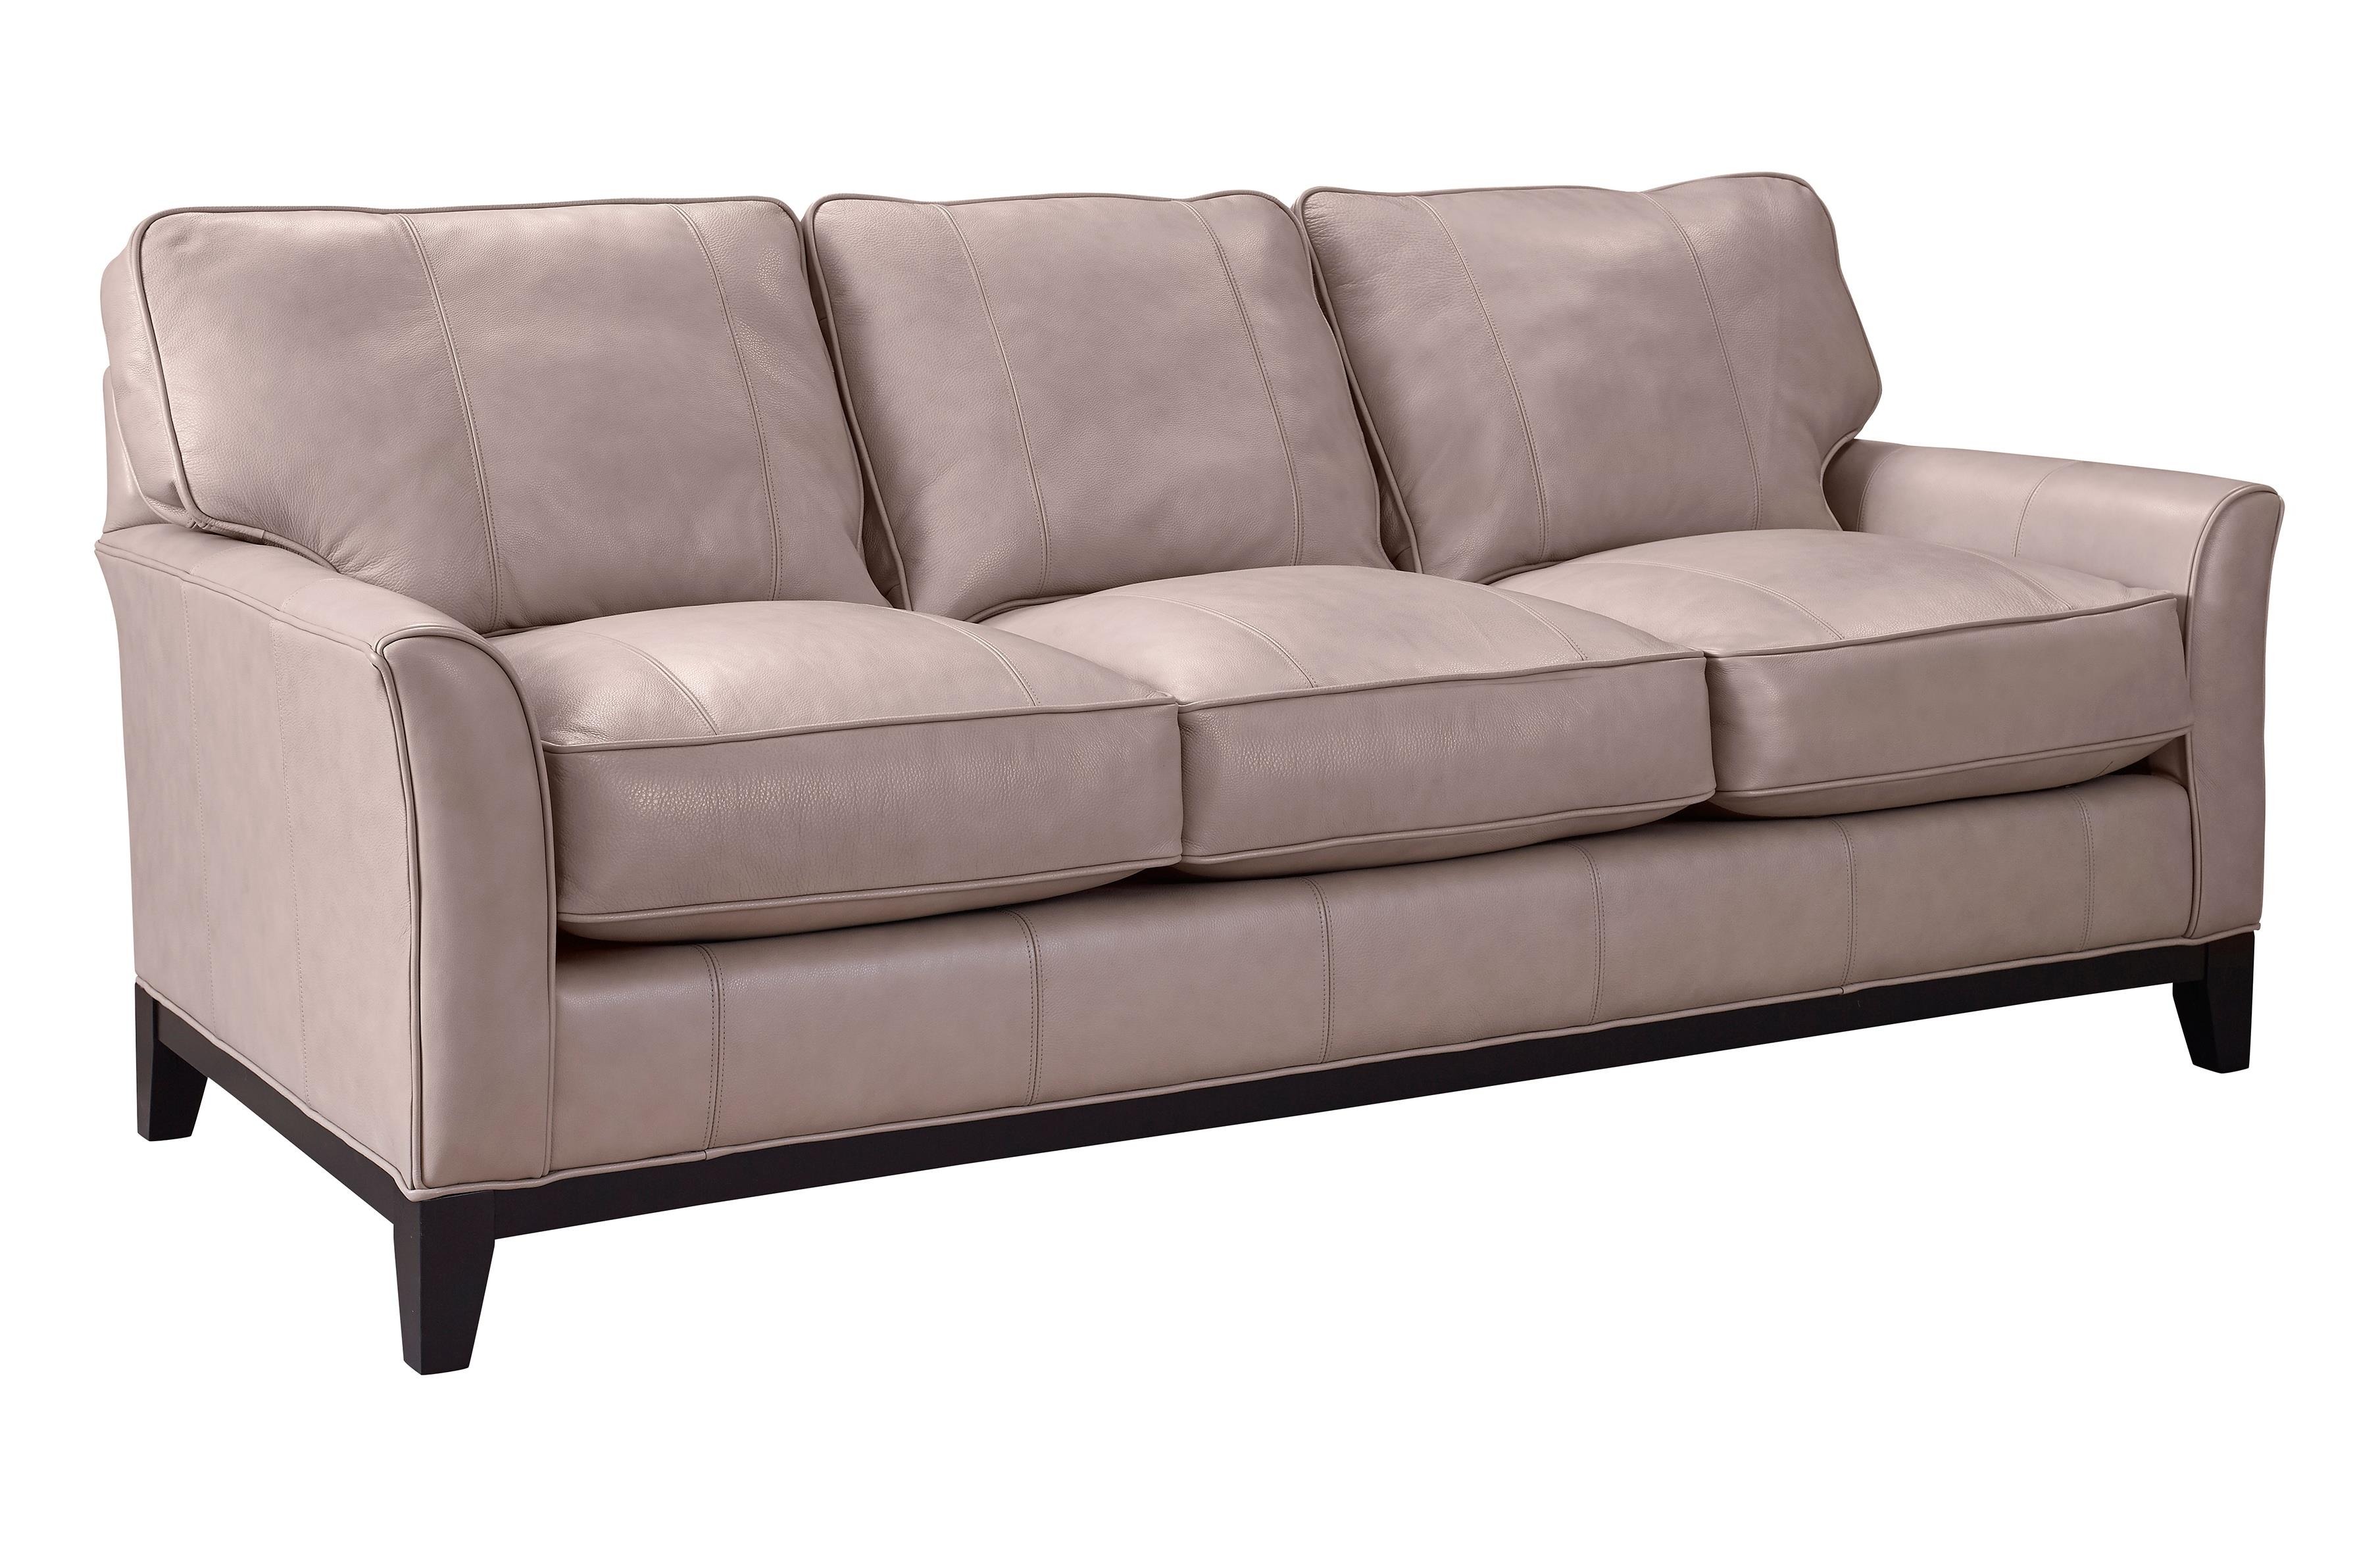 Broyhill Furniture Perspectives Stationary Sofa - Item Number: L4445-3-0011-80